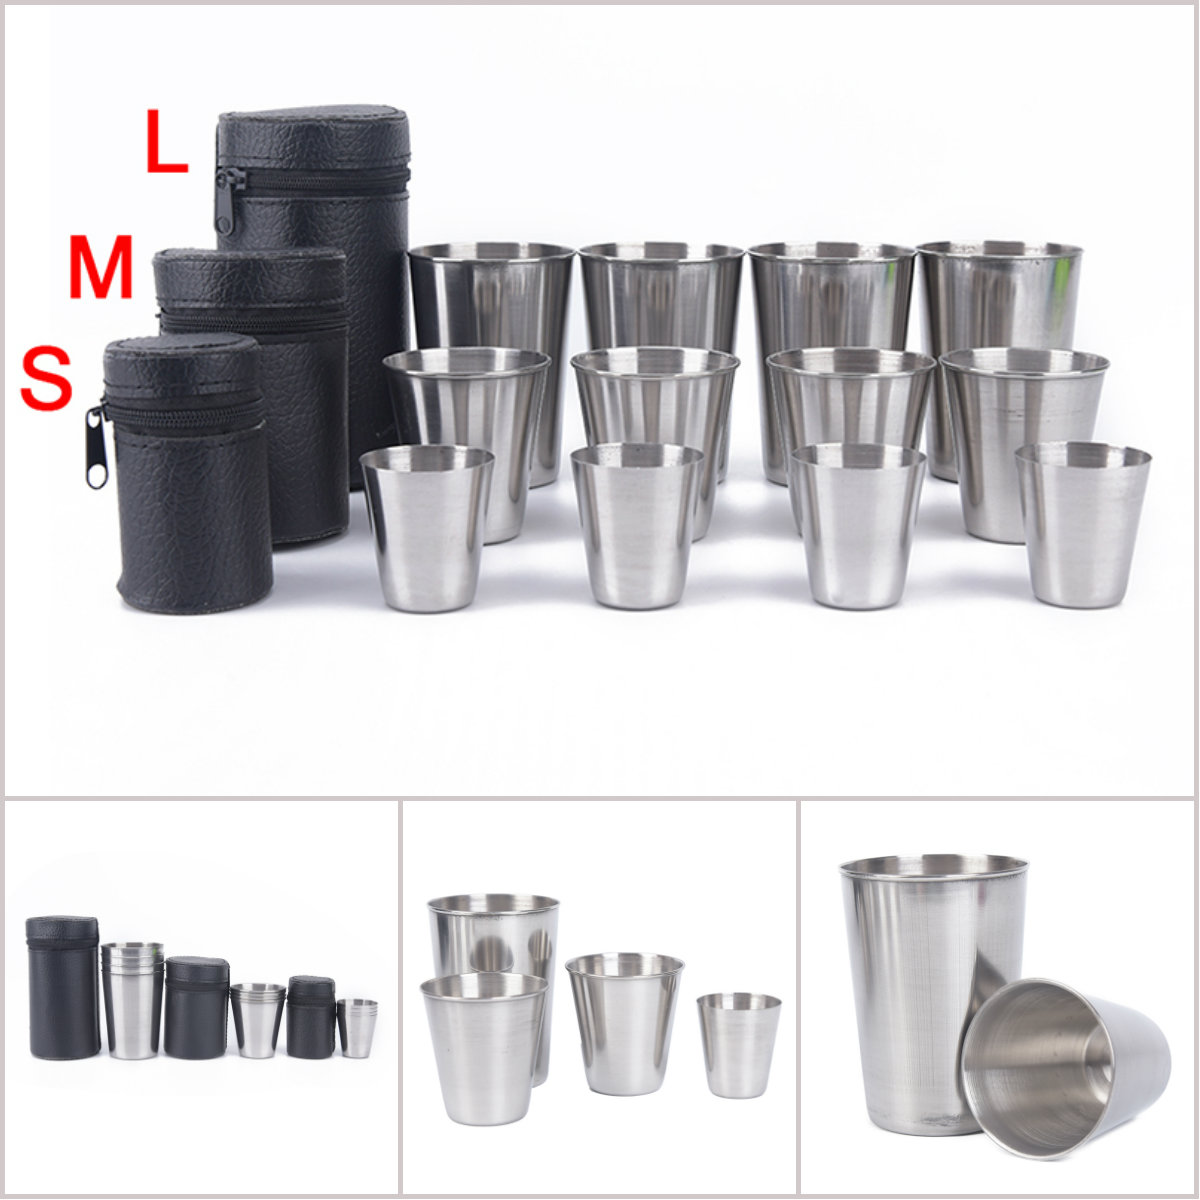 Camping Cup Mug Drinking Coffee Tea Beer With Case Ideal For Camping Holiday Picnic 1 Set Of 4 Stainless Steel Cover Mug Sports & Entertainment